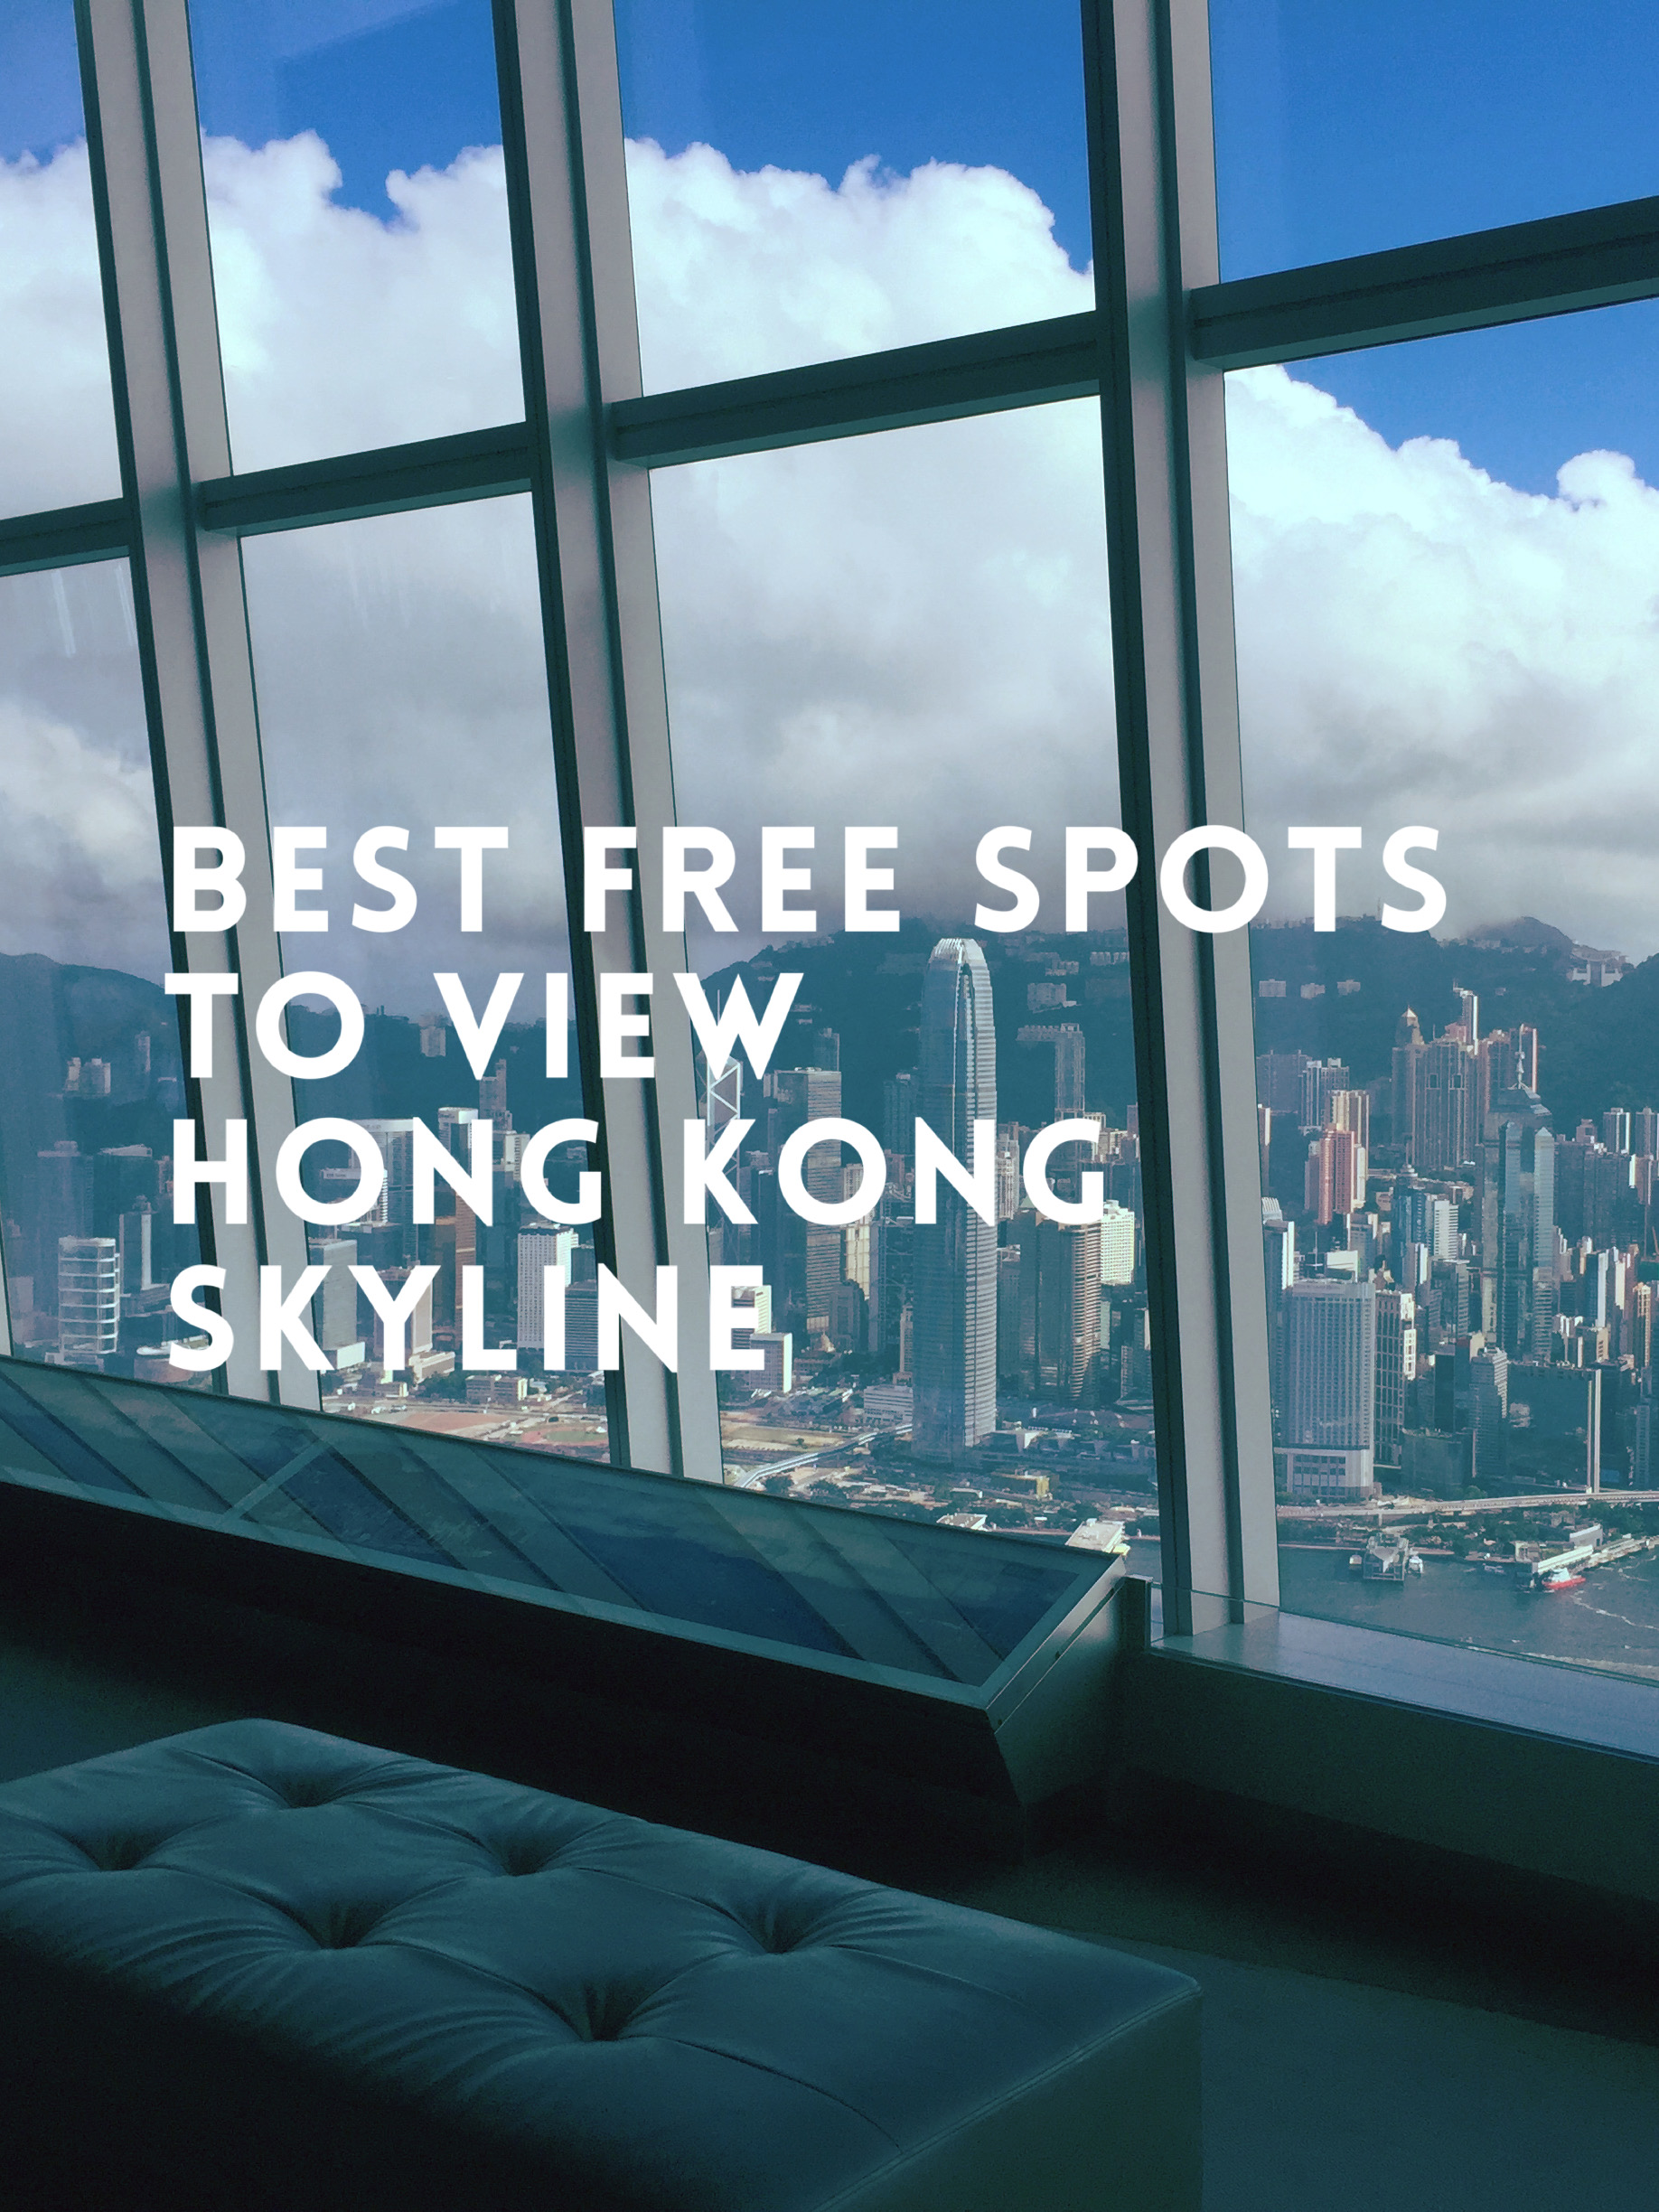 The Best Free Spots to View the Hong Kong Skyline